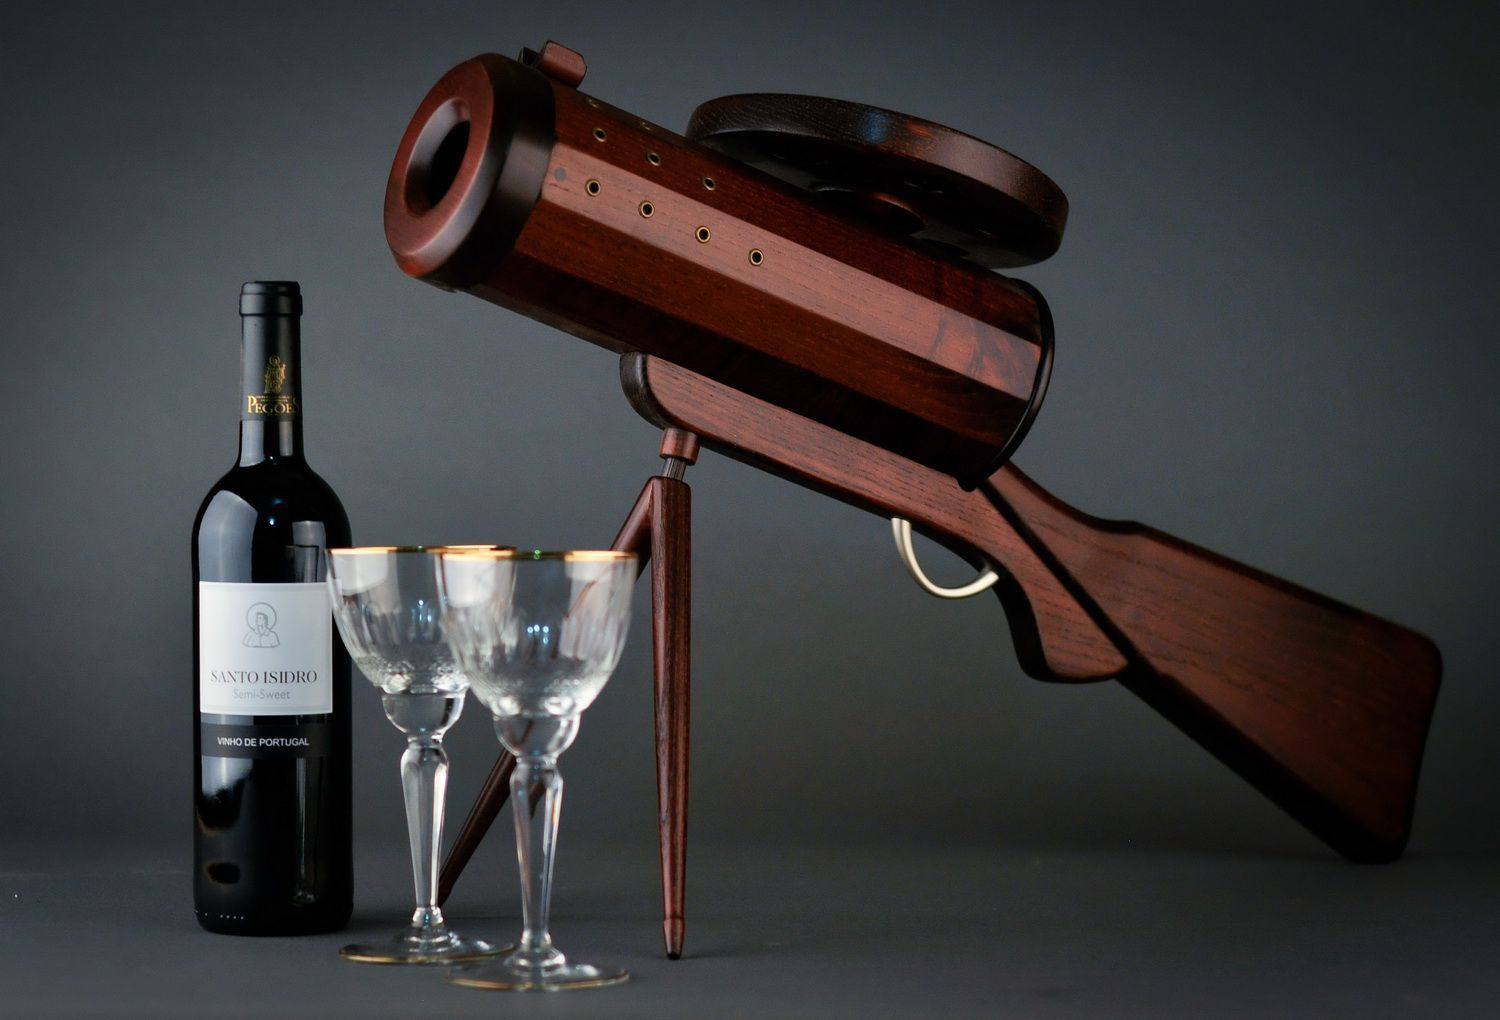 Wooden wine bottle stand in the form of a gun photo 1